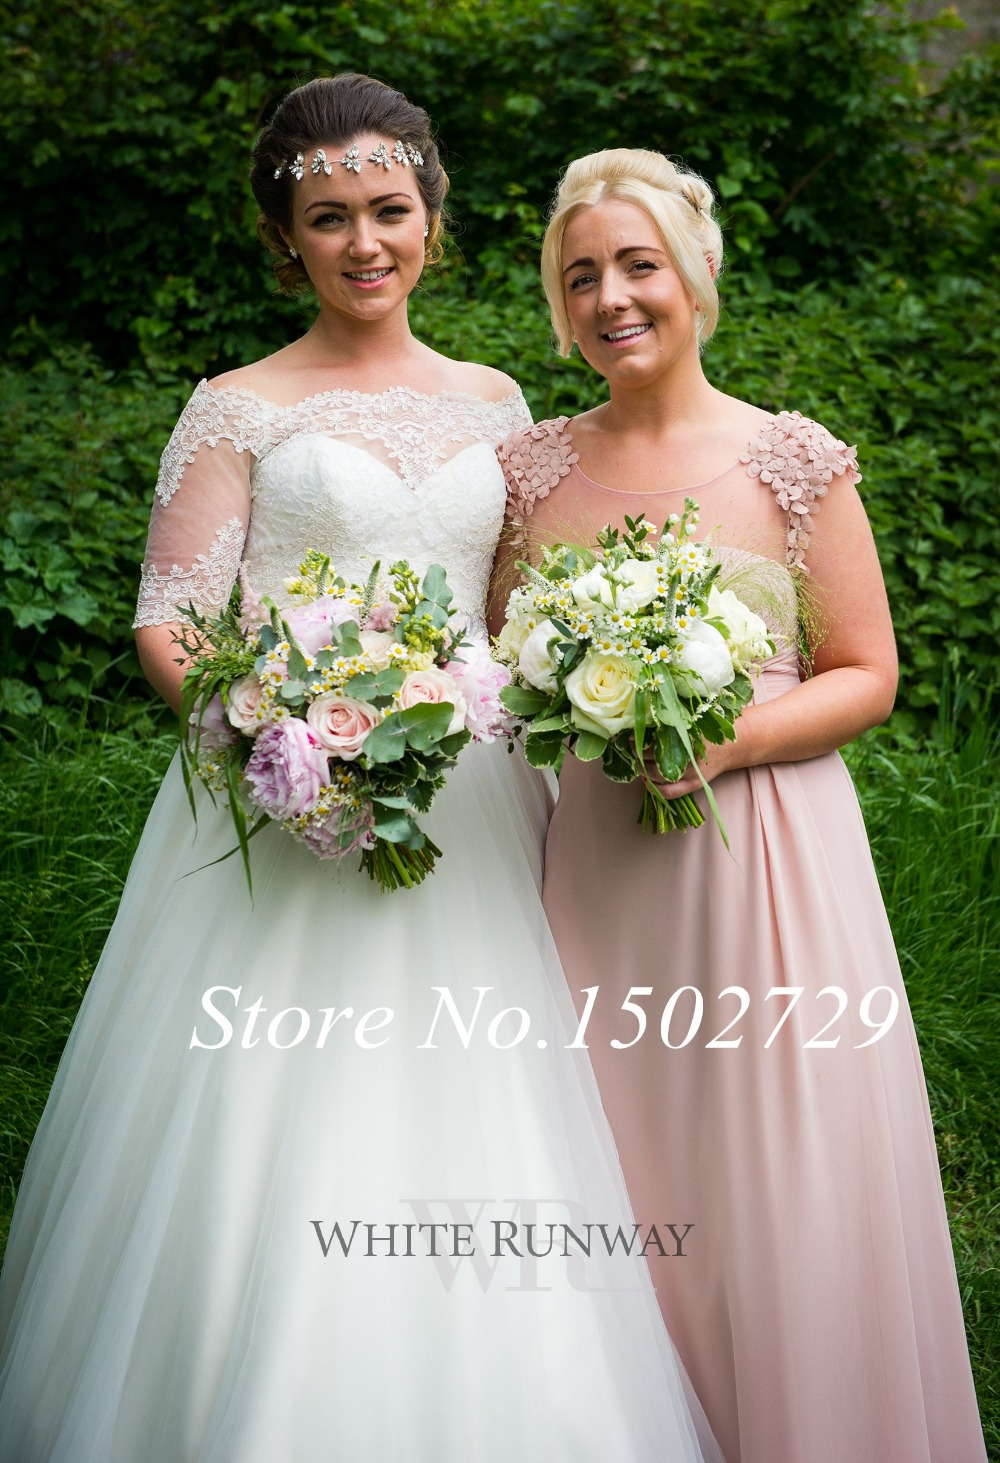 Cheap dusty pink chiffon long bridesmaid dresses under 100 sheer cheap dusty pink chiffon long bridesmaid dresses under 100 sheer neck flora maid of honor dress for wedding party gowns vestidos in bridesmaid dresses from ombrellifo Image collections